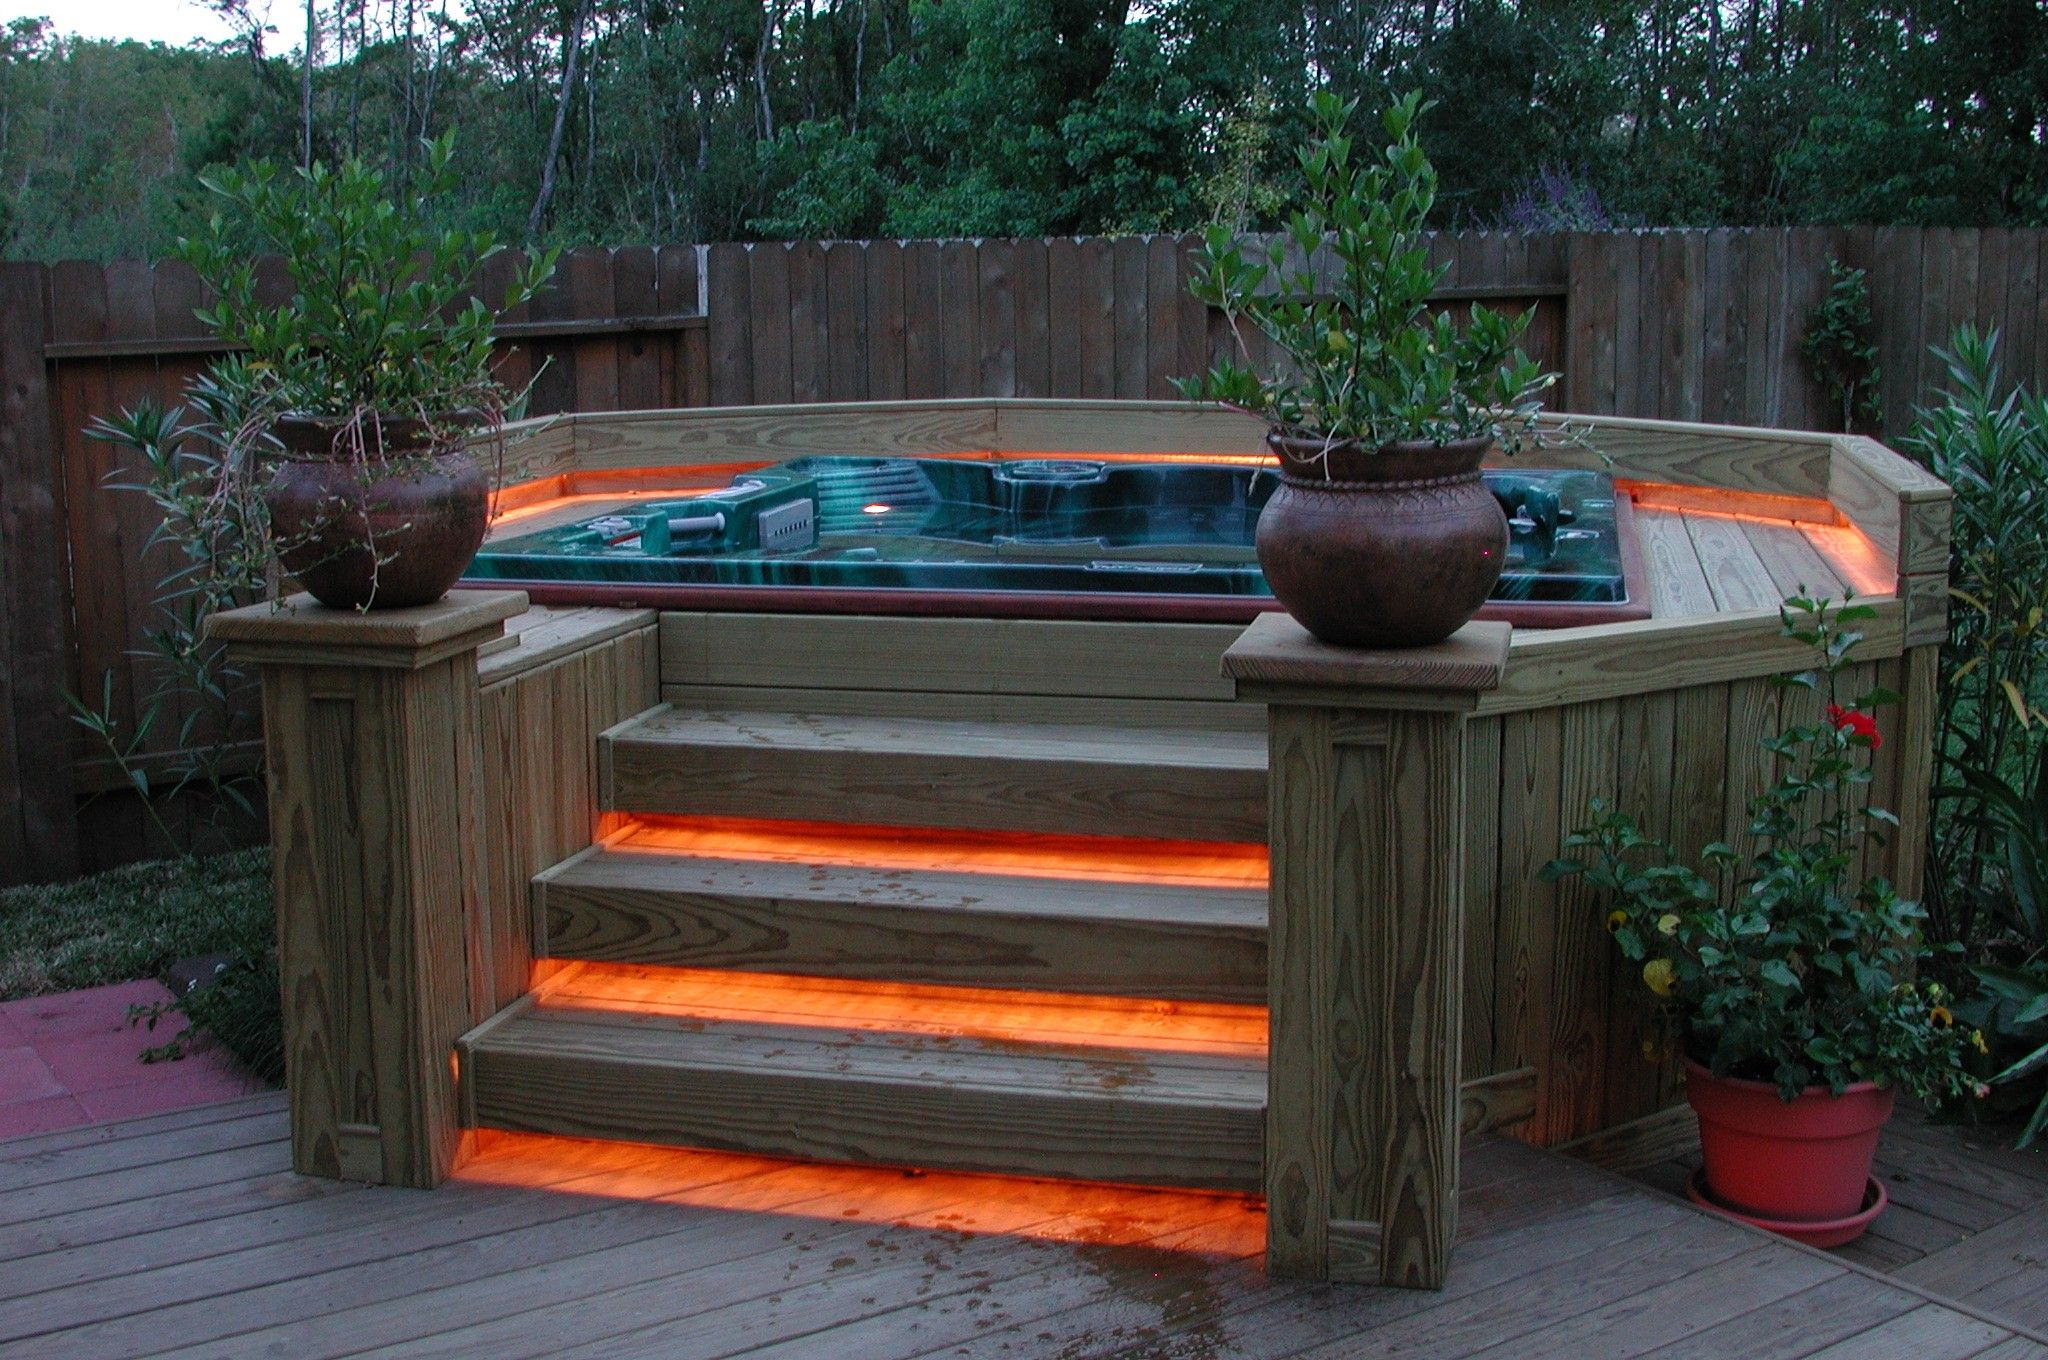 47 Irresistible Hot Tub Spa Designs For Your Backyard Dive Right with regard to 11 Some of the Coolest Designs of How to Makeover Hot Tub Backyard Ideas